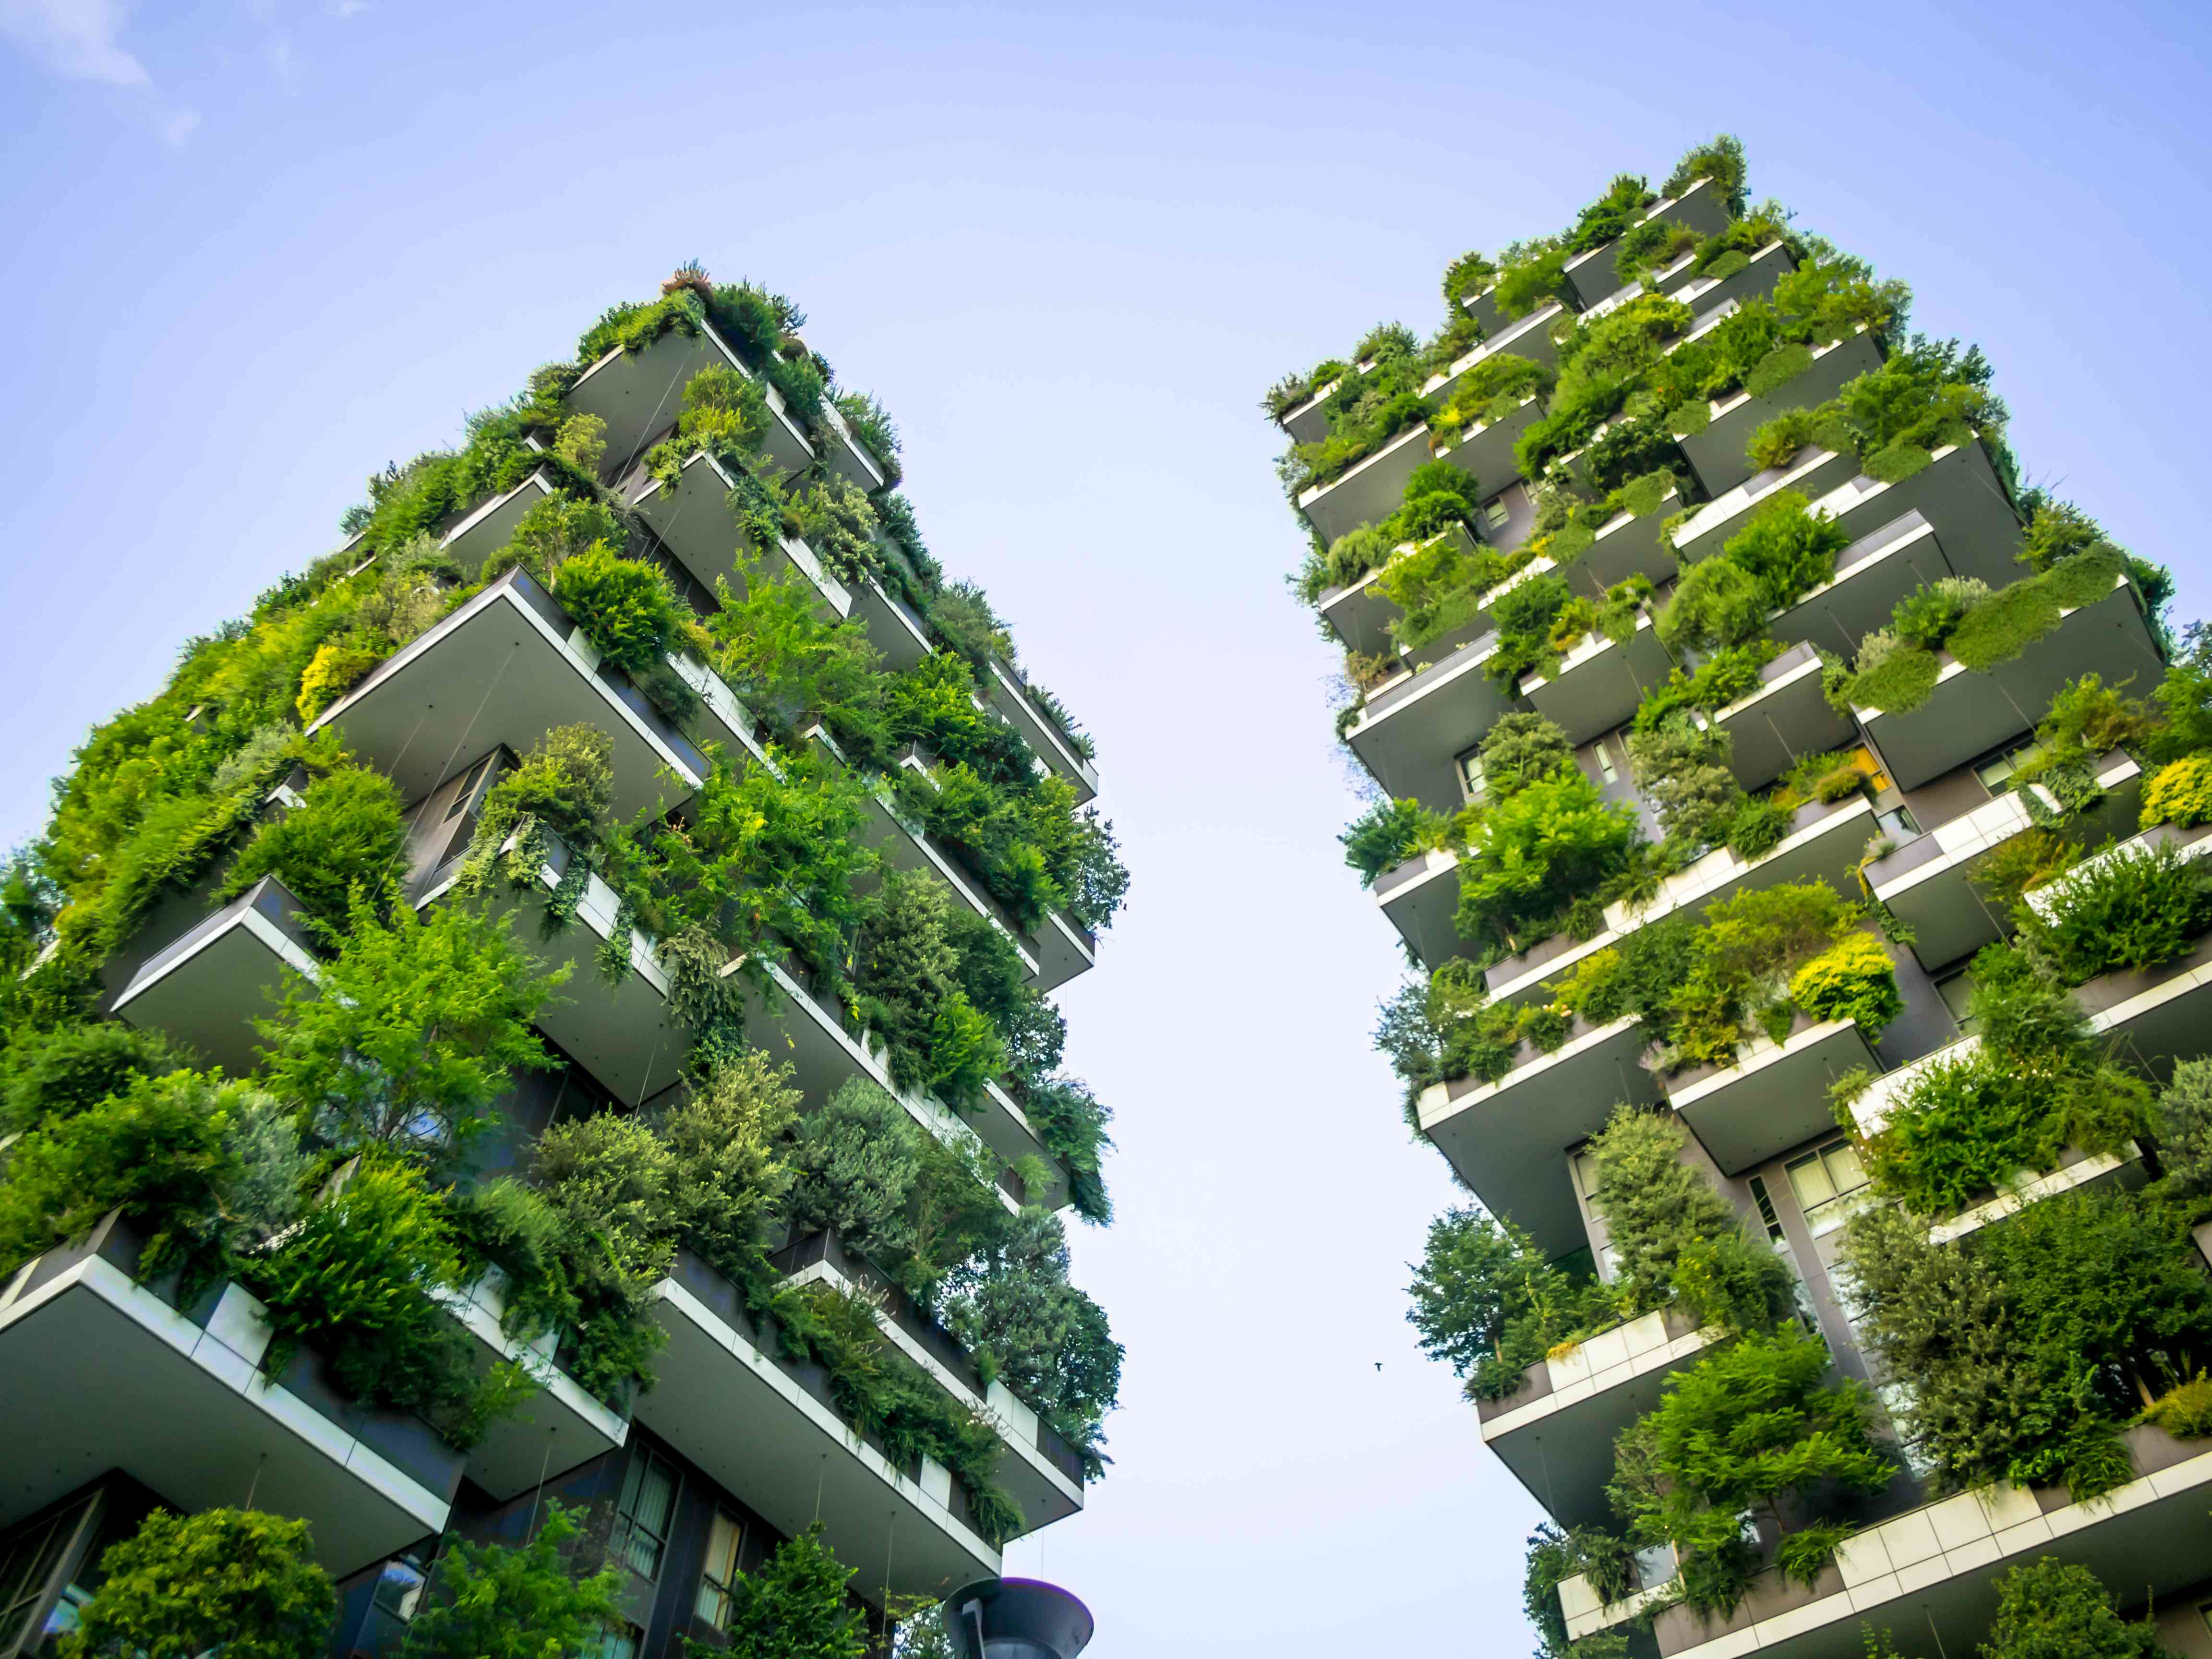 Bosco Verticale towers in Milan, Italy